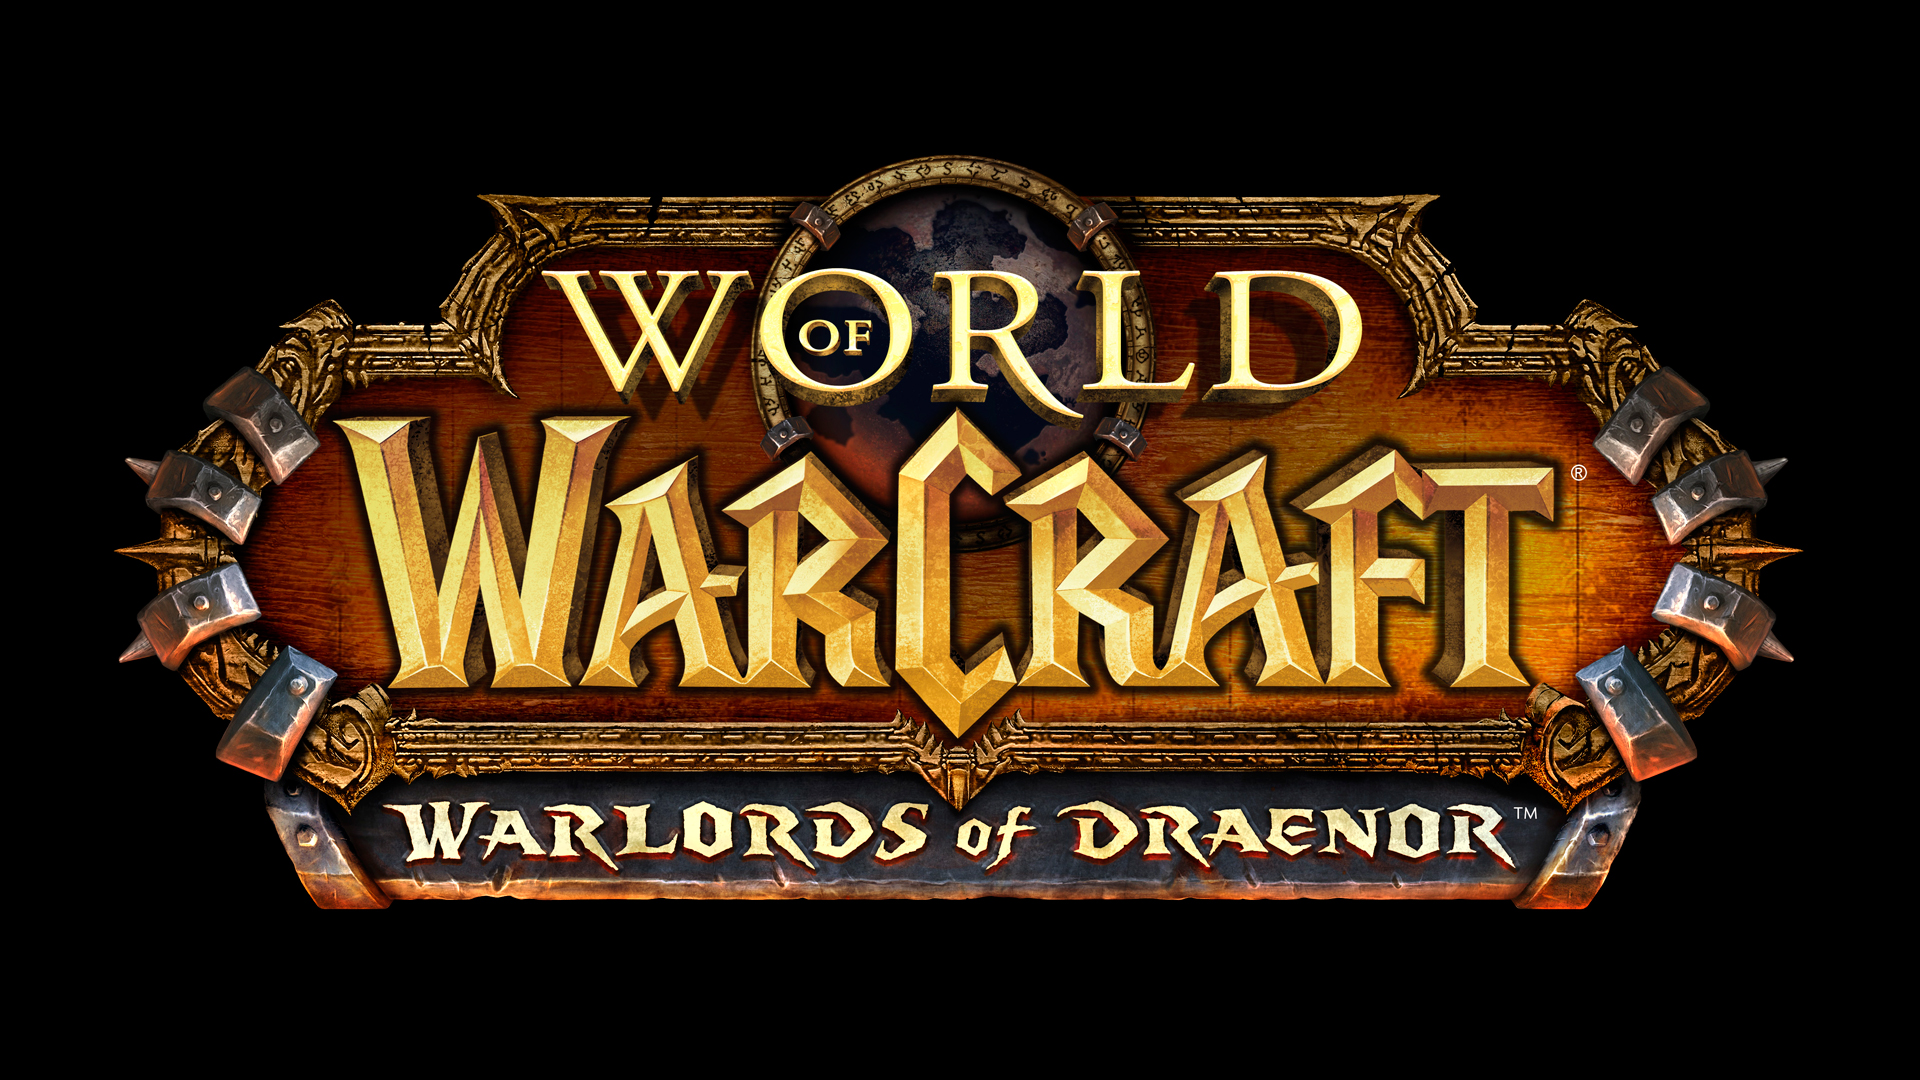 World Of Warcraft Warlords Of Draenor Wallpaper